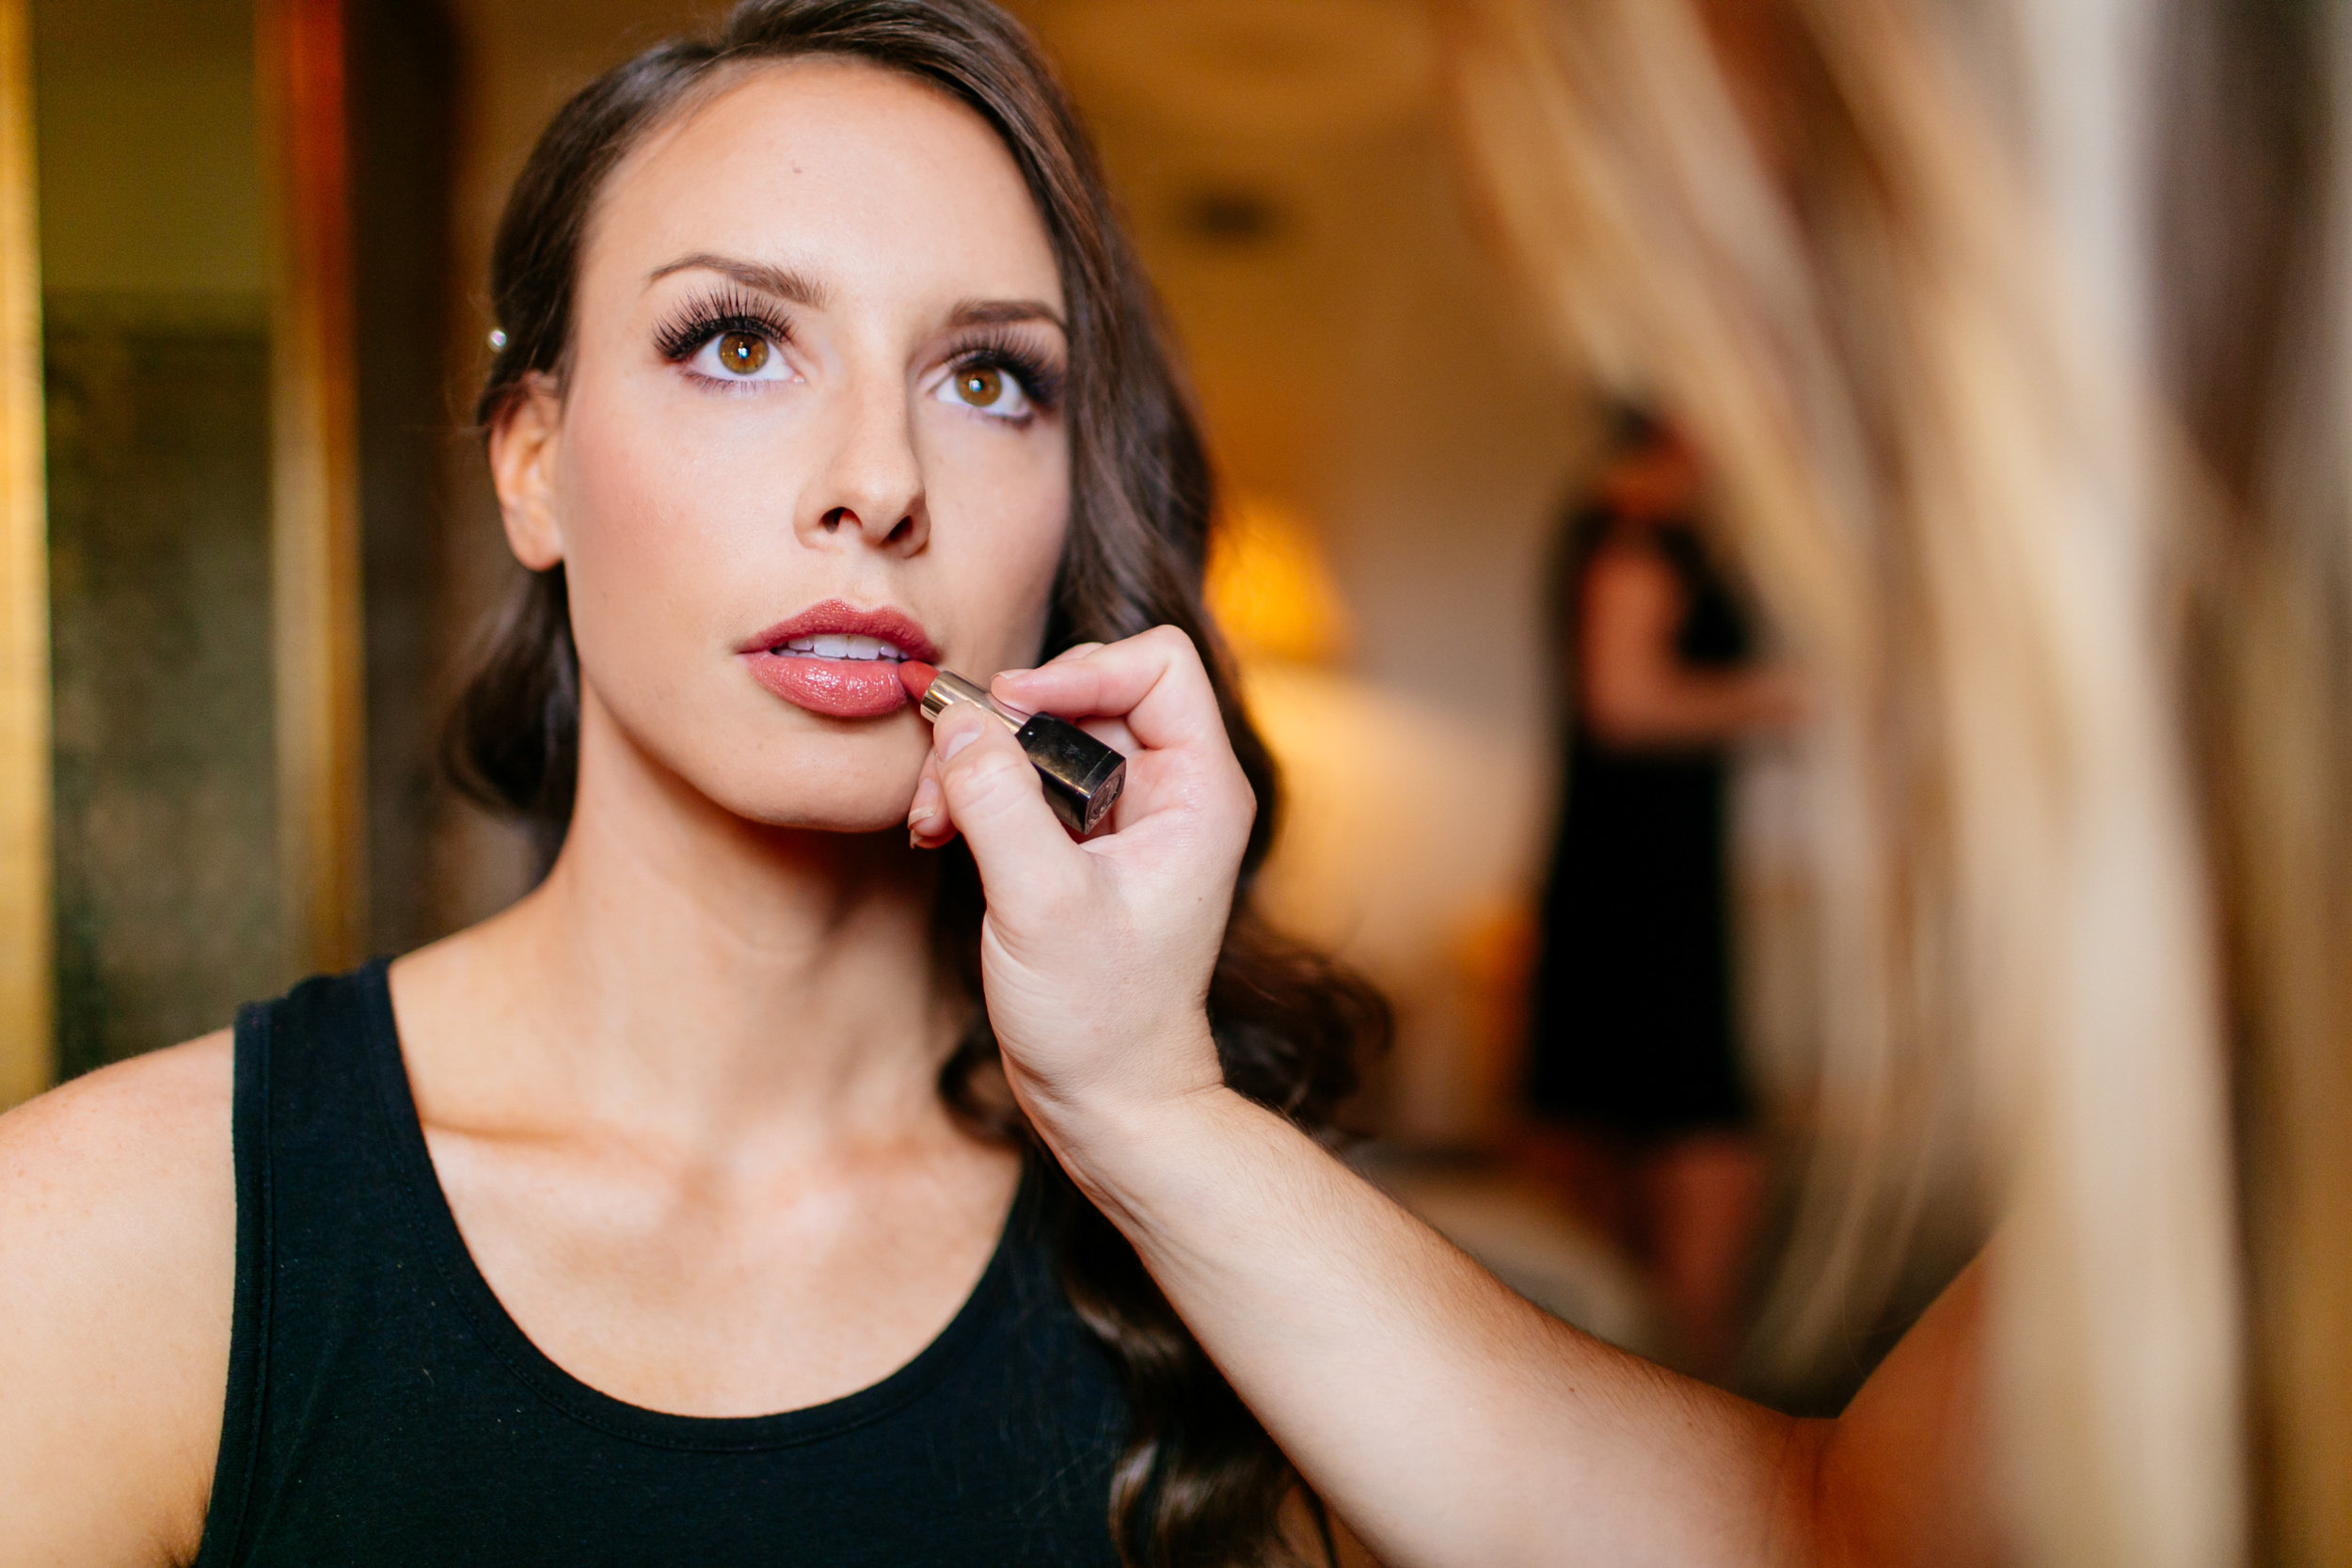 How to Capture Your Getting Ready Photos | Leah Fontaine Photography | Getting ready photos with putting on lipstick glamour shot